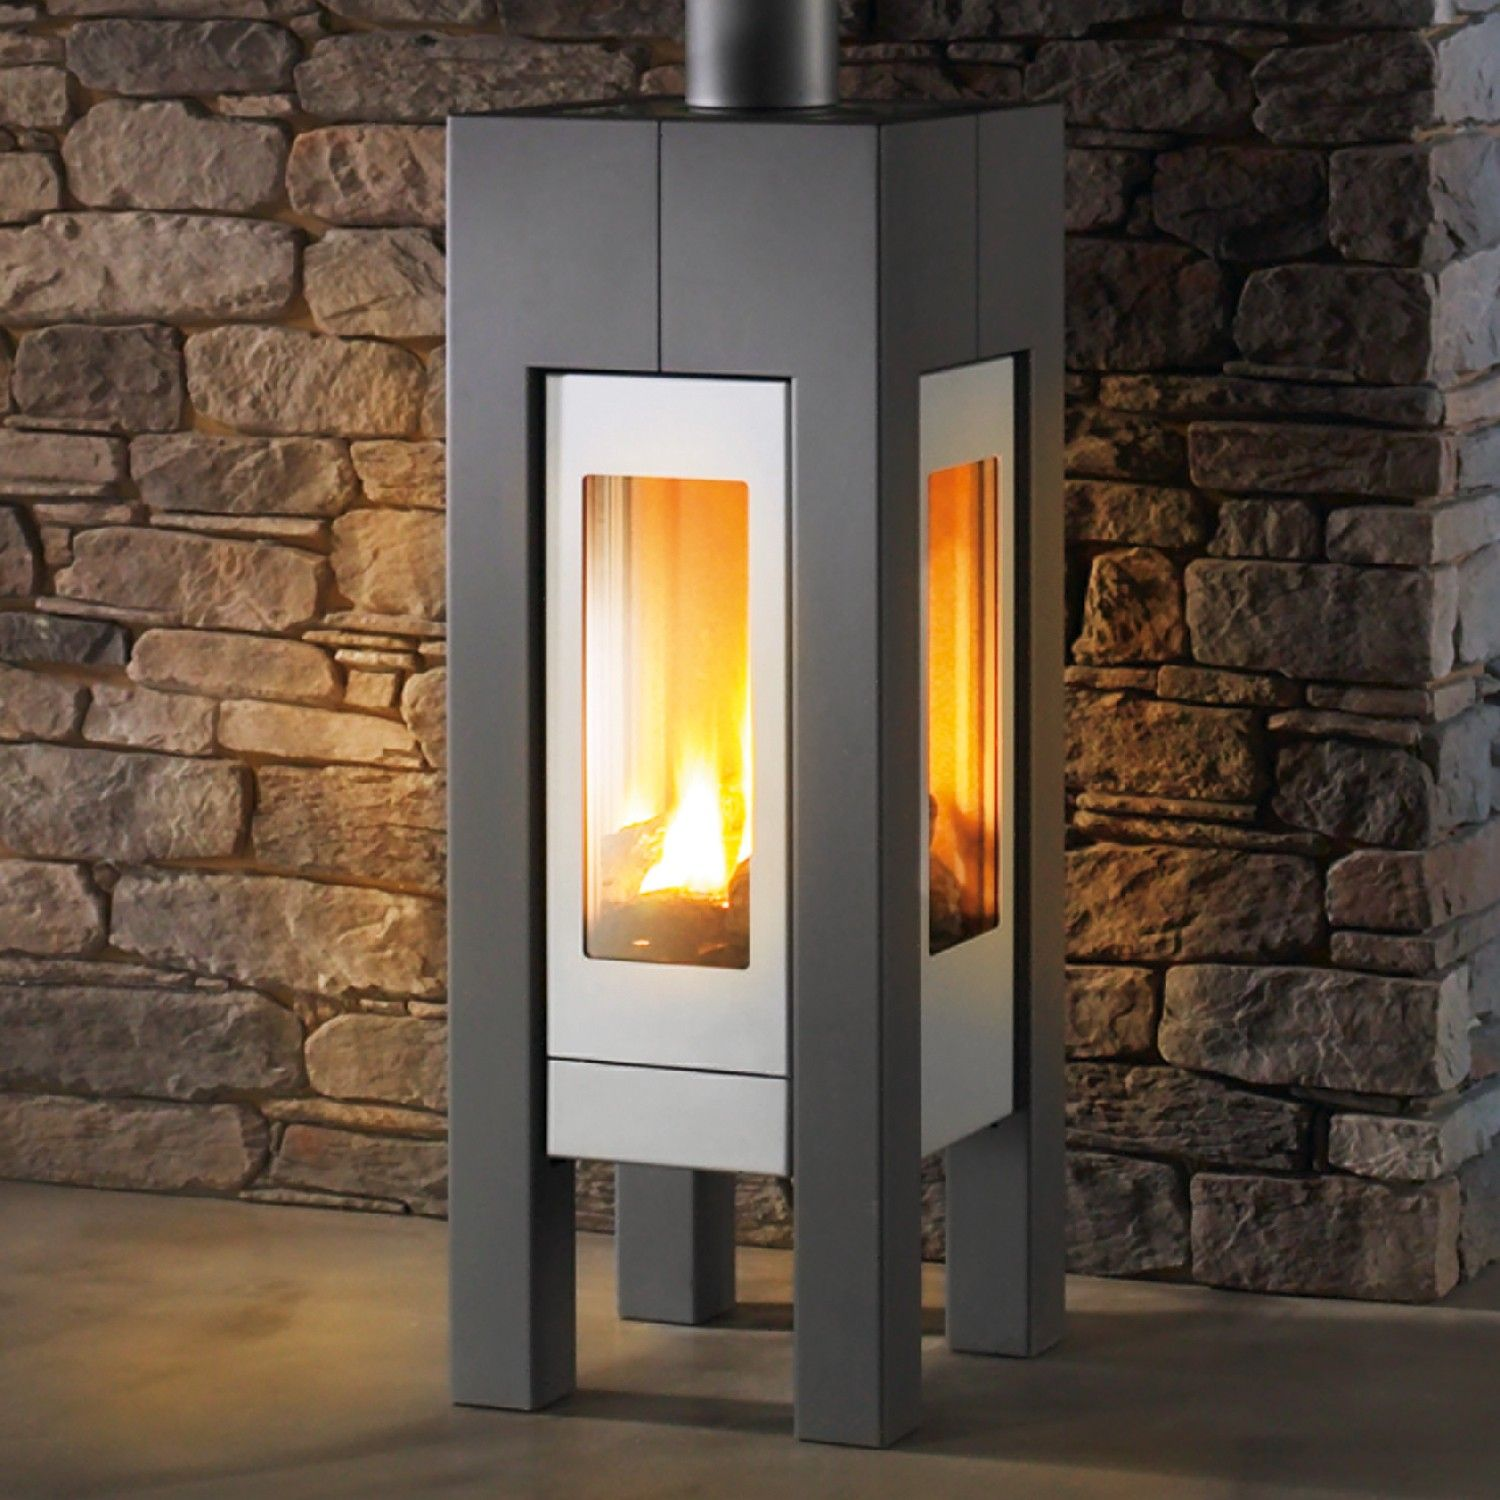 MODENA 8140 gas stove by Hearthstone. Heats up to 1300 sq